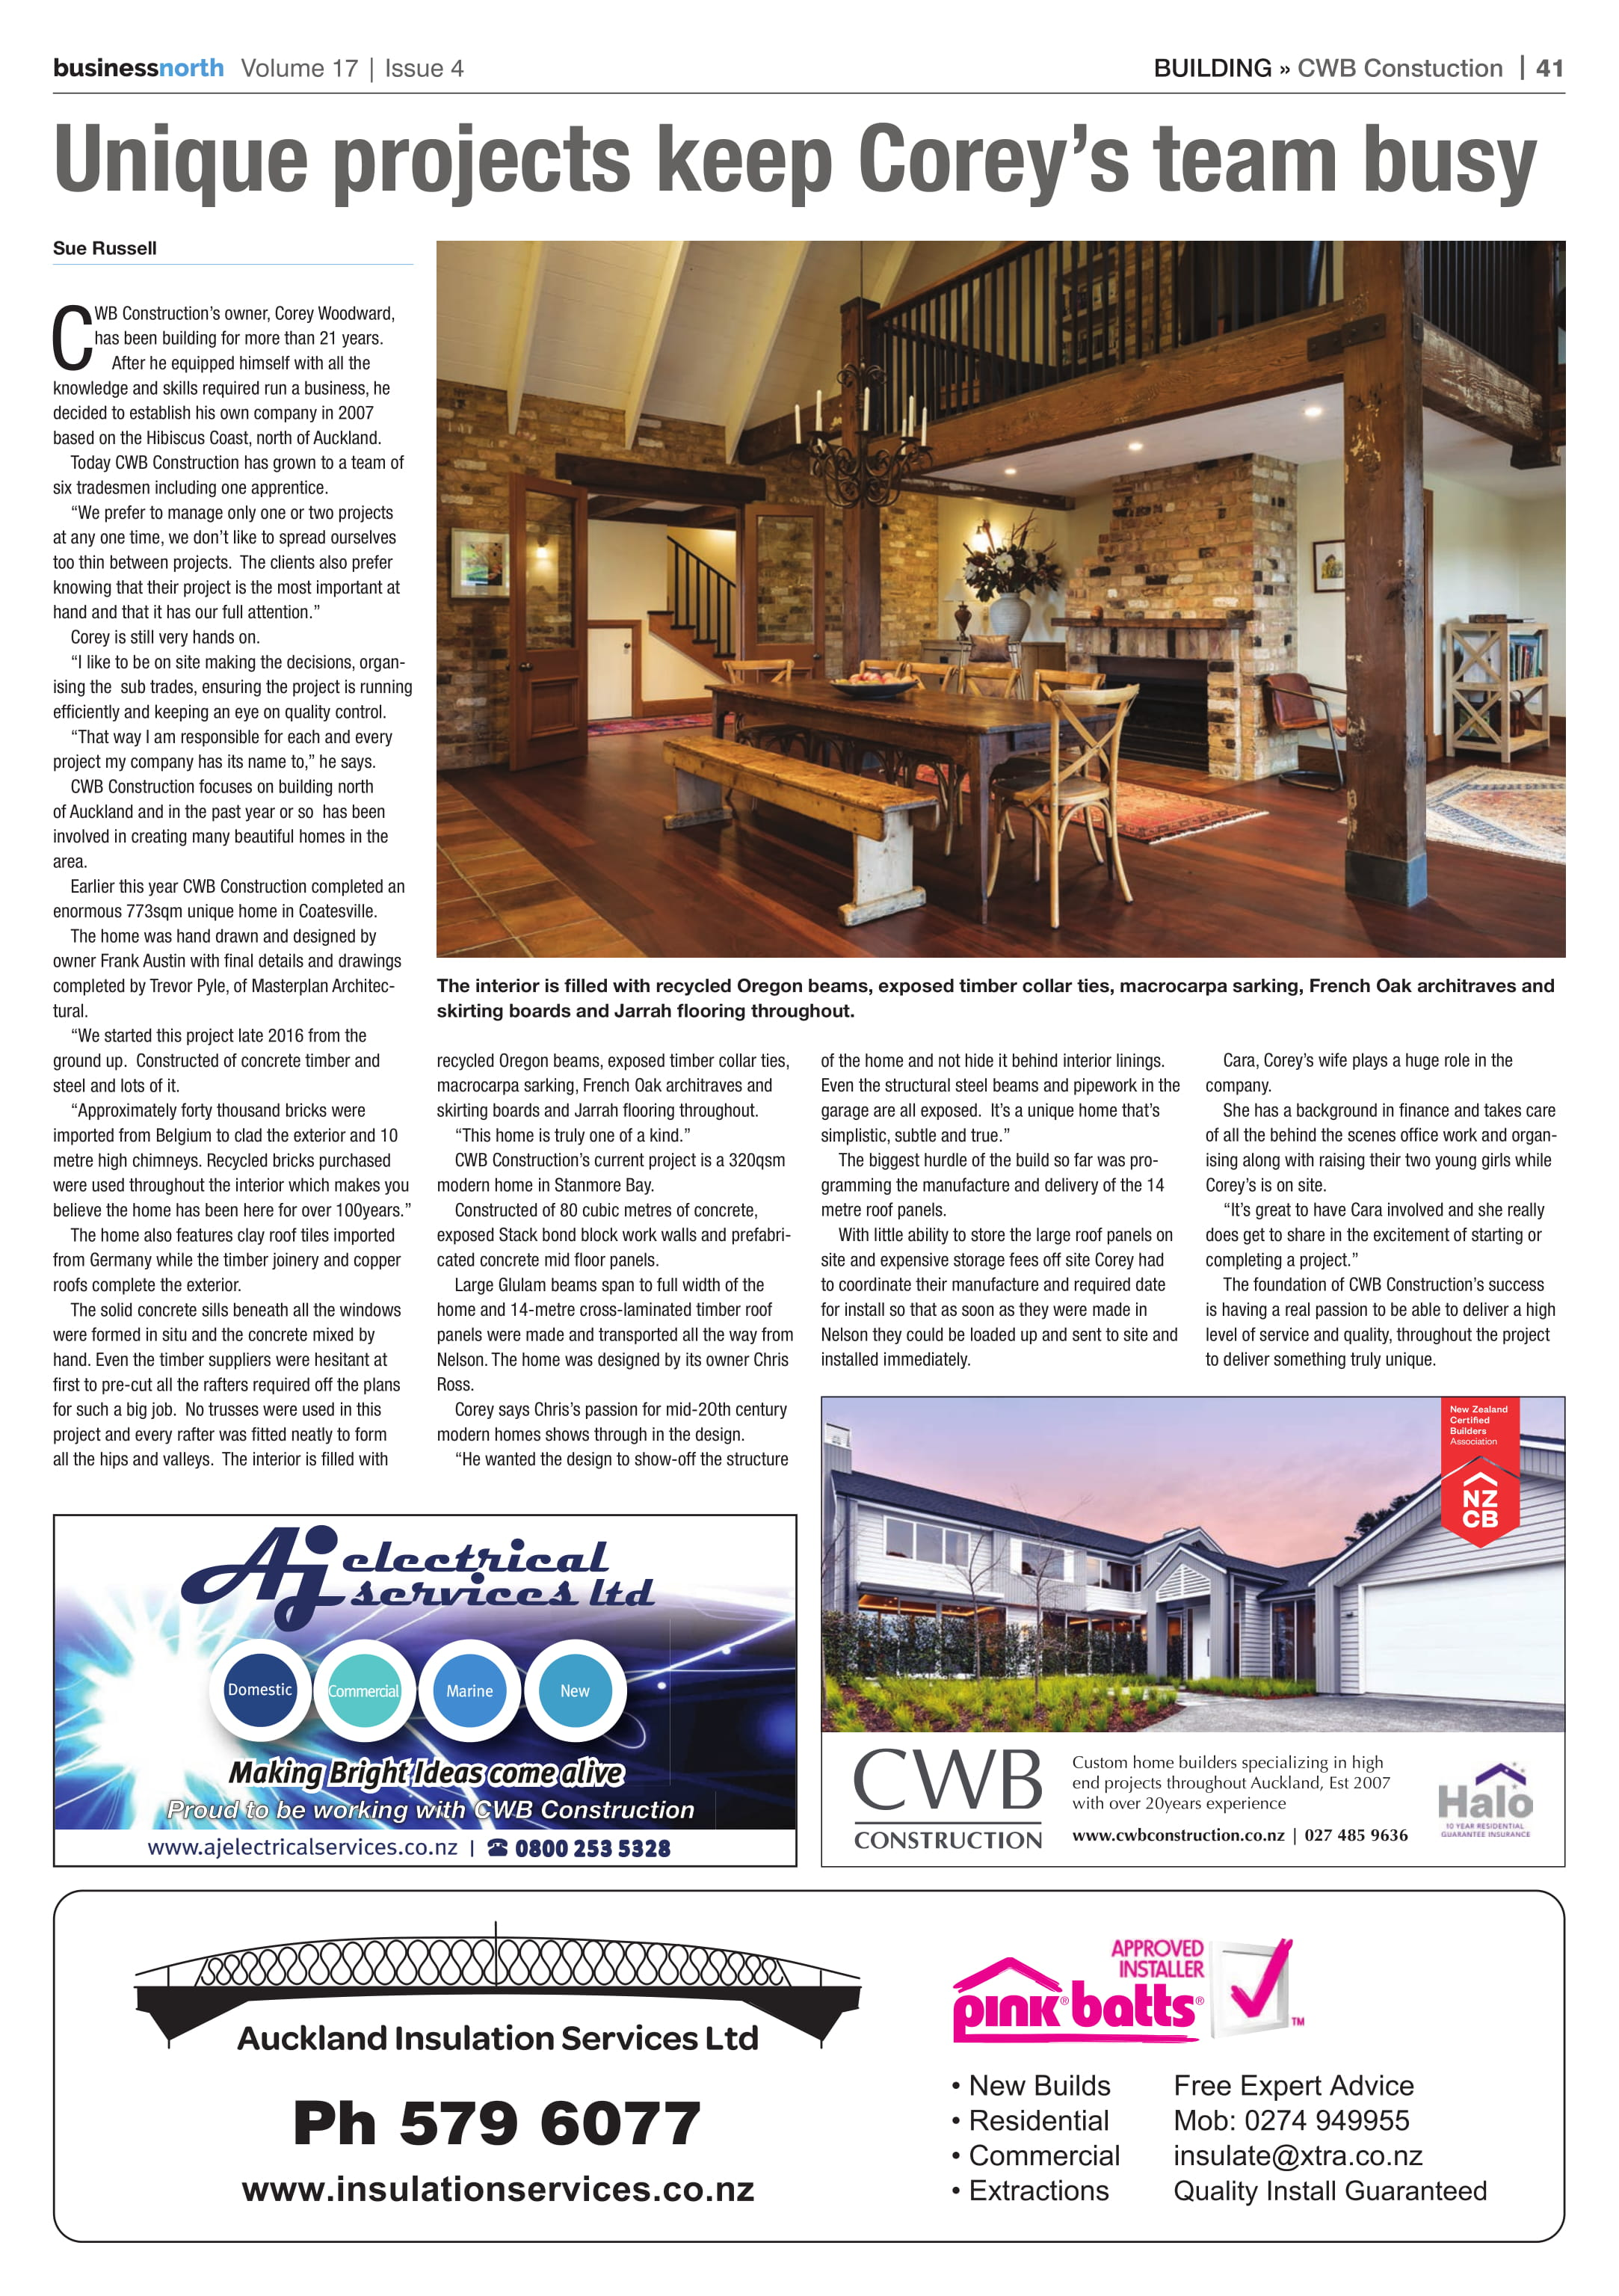 The Coatesville Residence was recently featured in Business North - Sept 2018